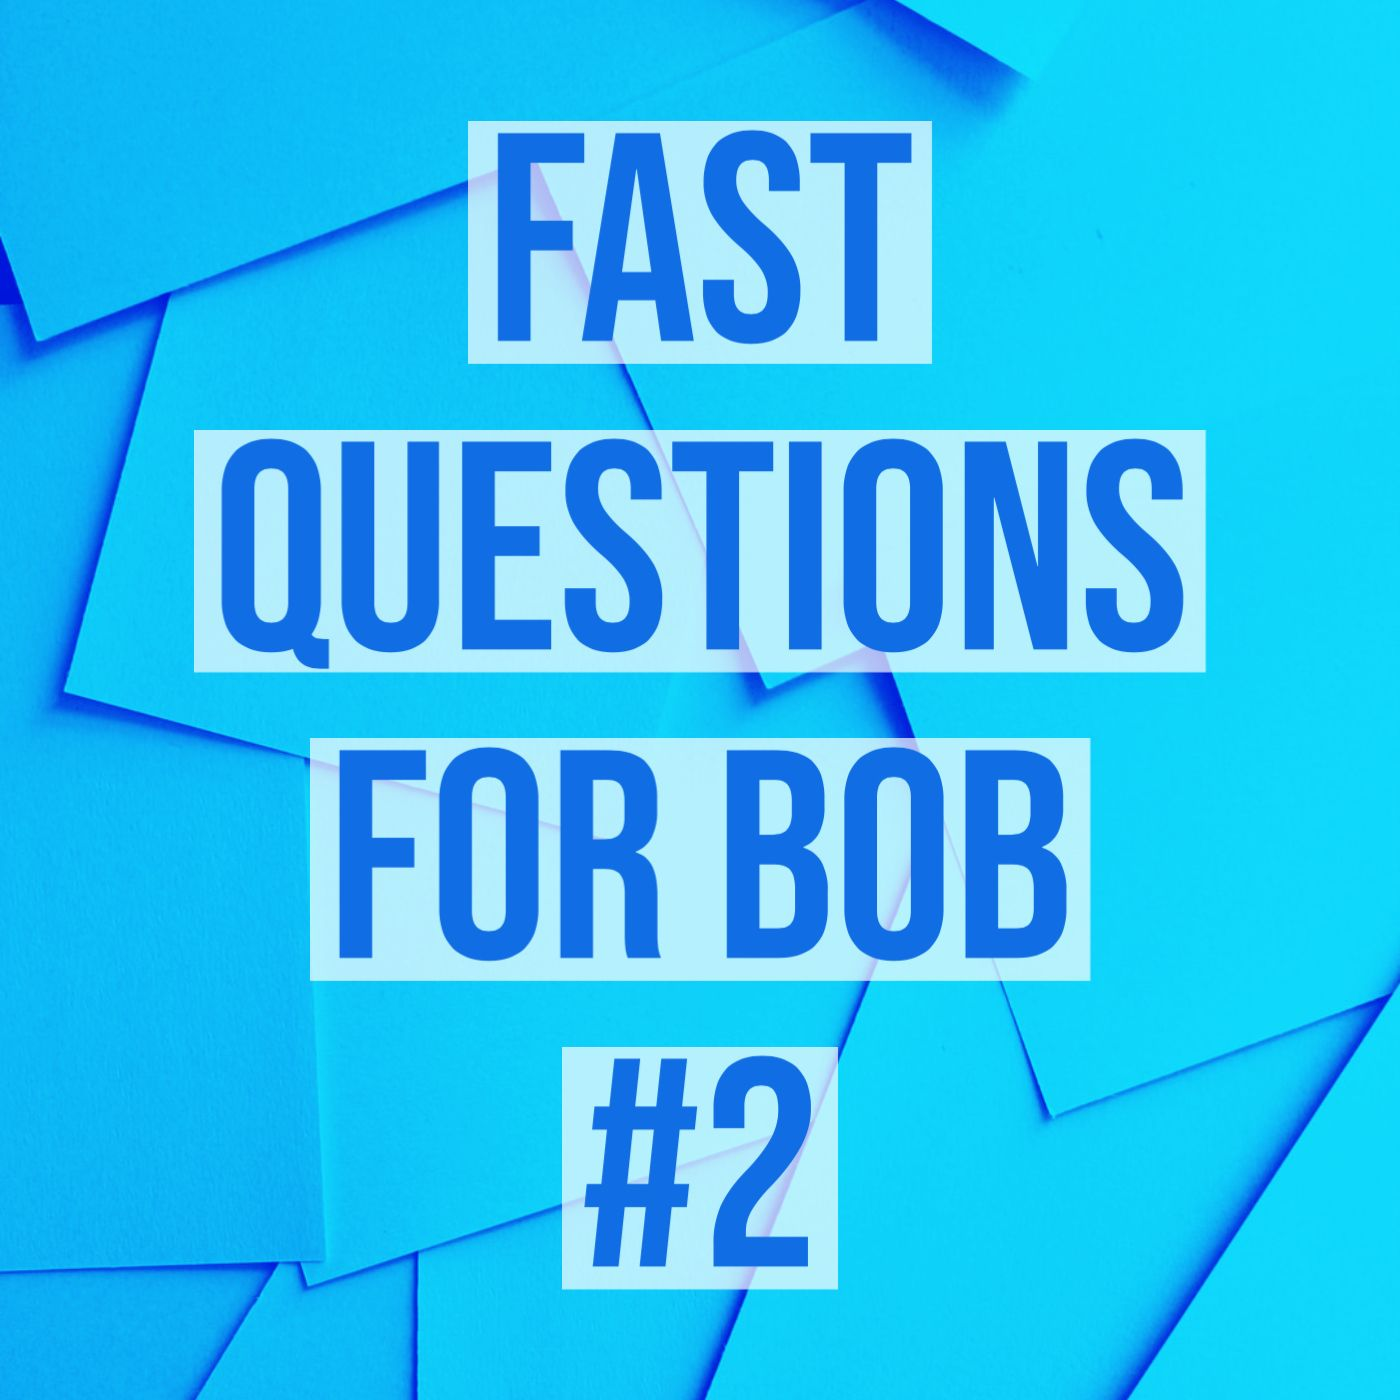 Fast Questions for Bob #2